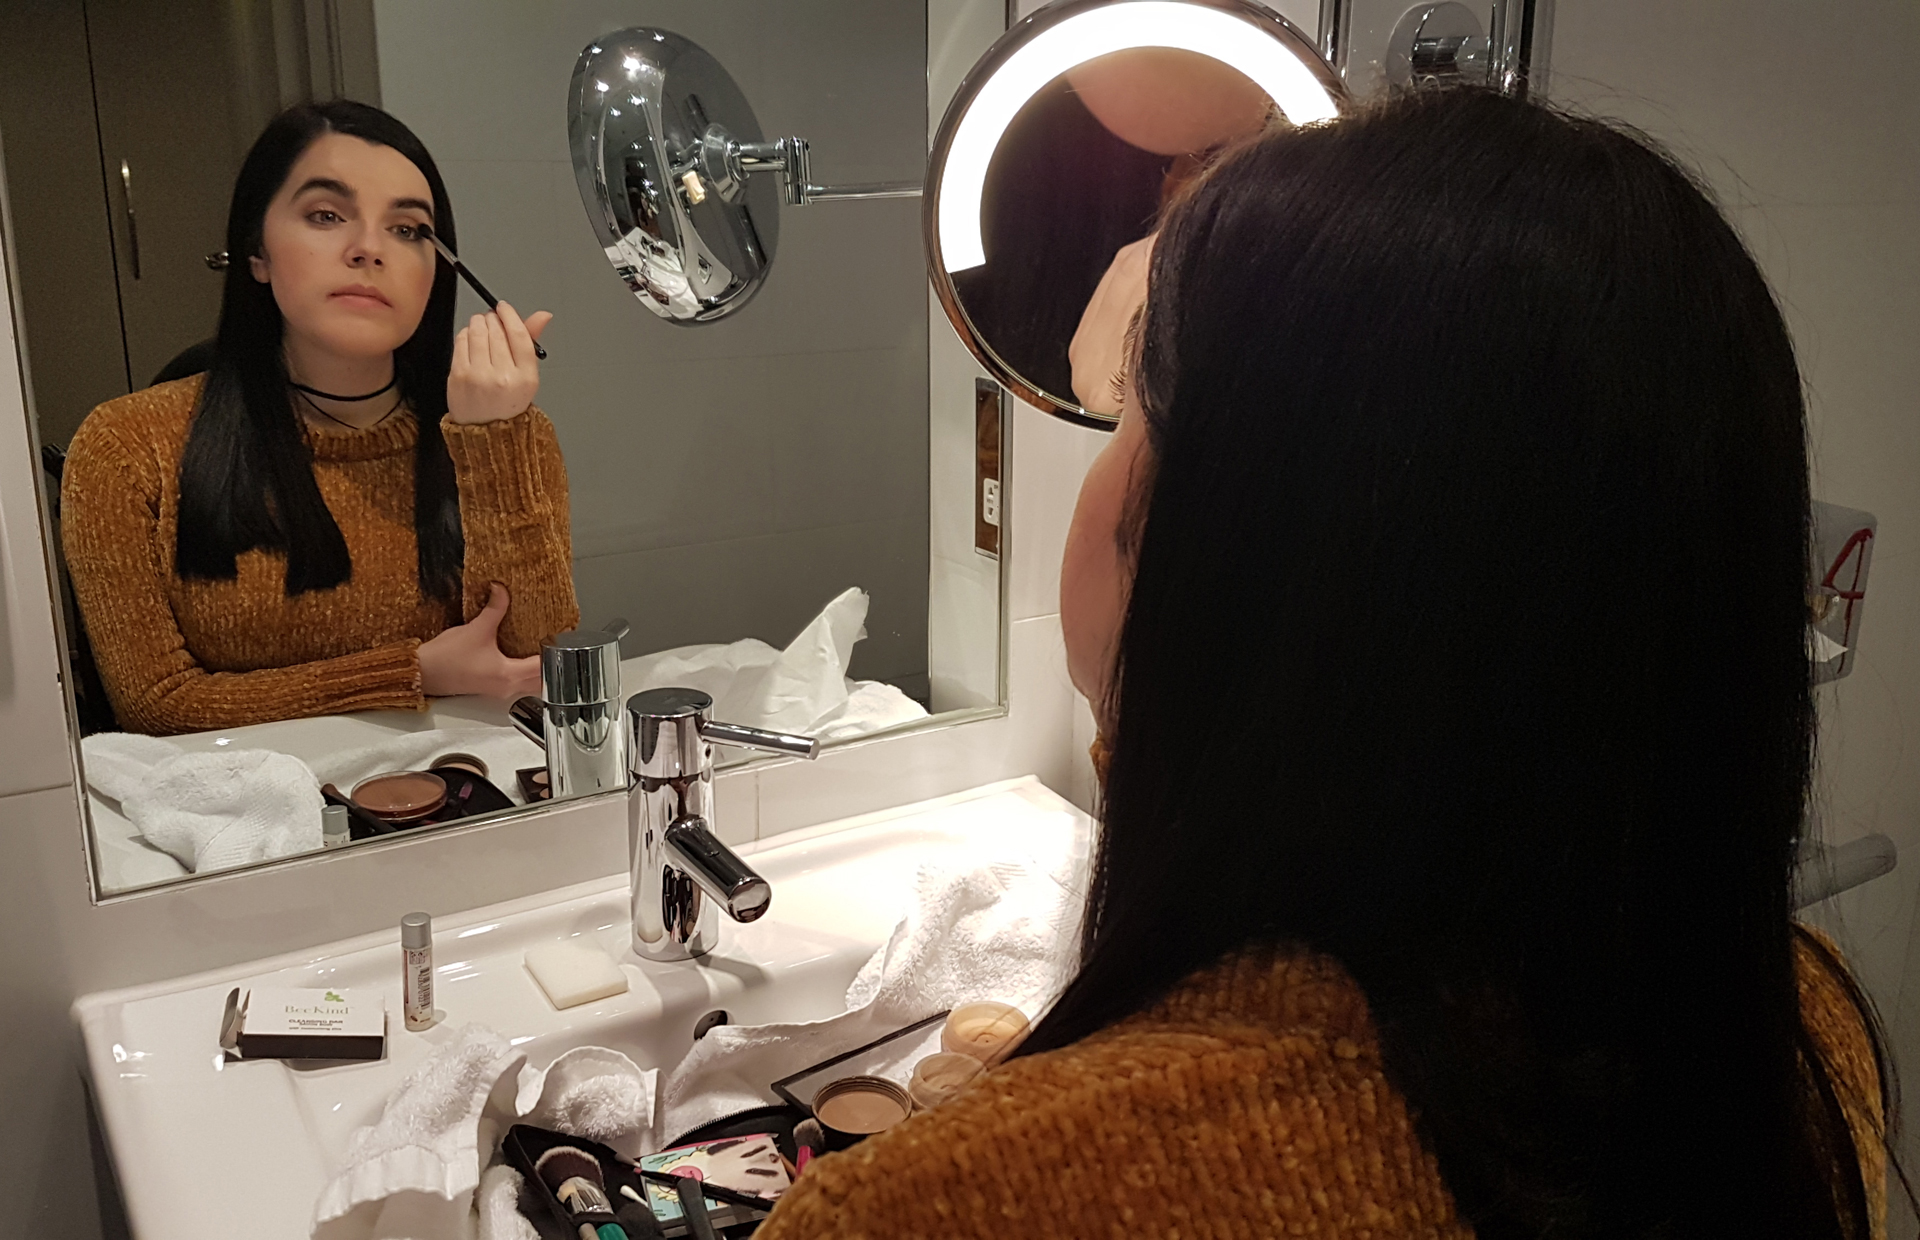 Emma of Simply Emma doing her makeup in her hotel room wearing a mustard chenille jumper.